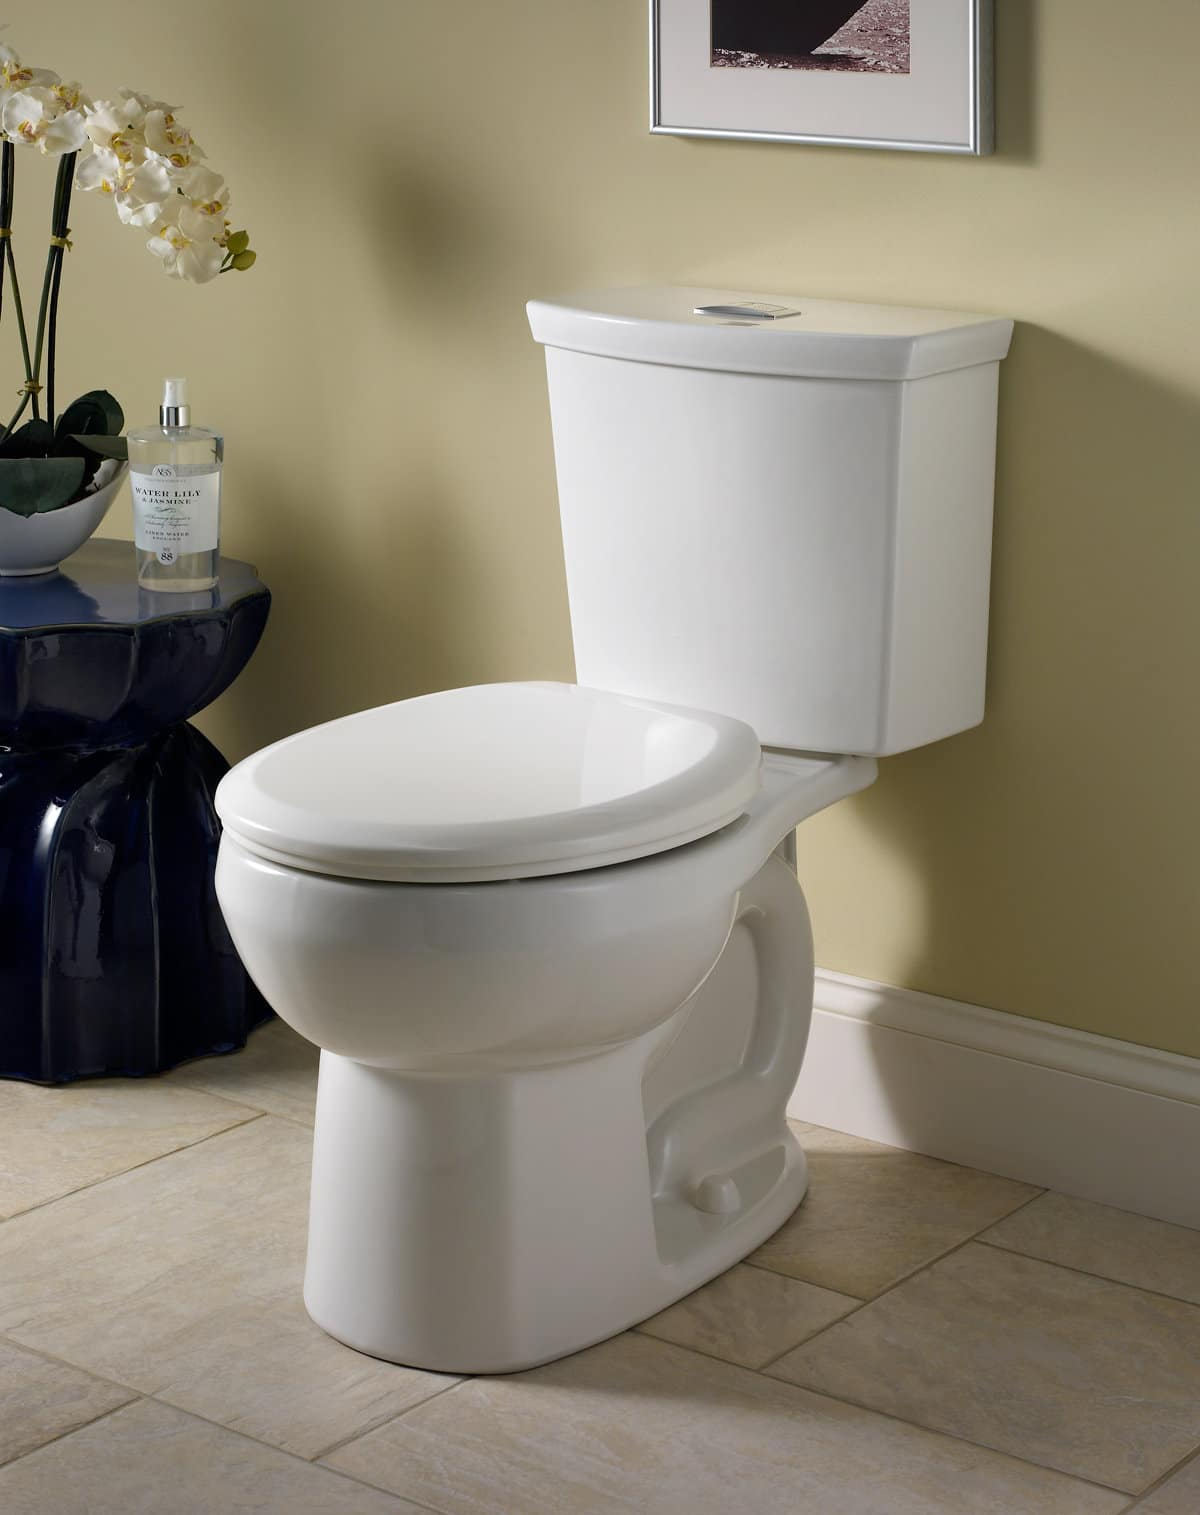 American Standard H2Option Siphonic Toilet Review - Shop Toilet